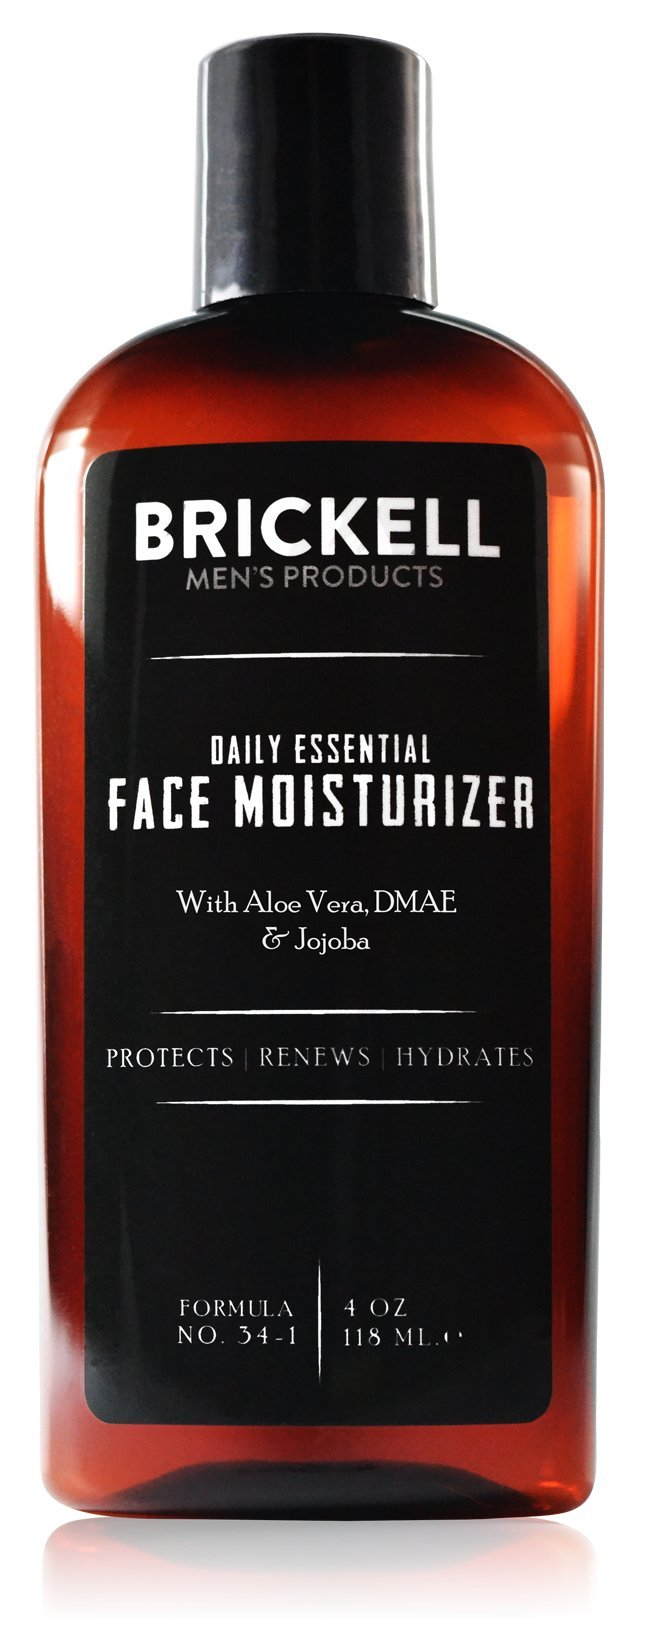 Brickell Men's Daily Essential Face Moisturizer for Men, Natural and Organic Fast-Absorbing Face Lotion with Hyaluronic Acid, Green Tea, and Jojoba, 4 Ounce, Scented by Brickell Men's Products